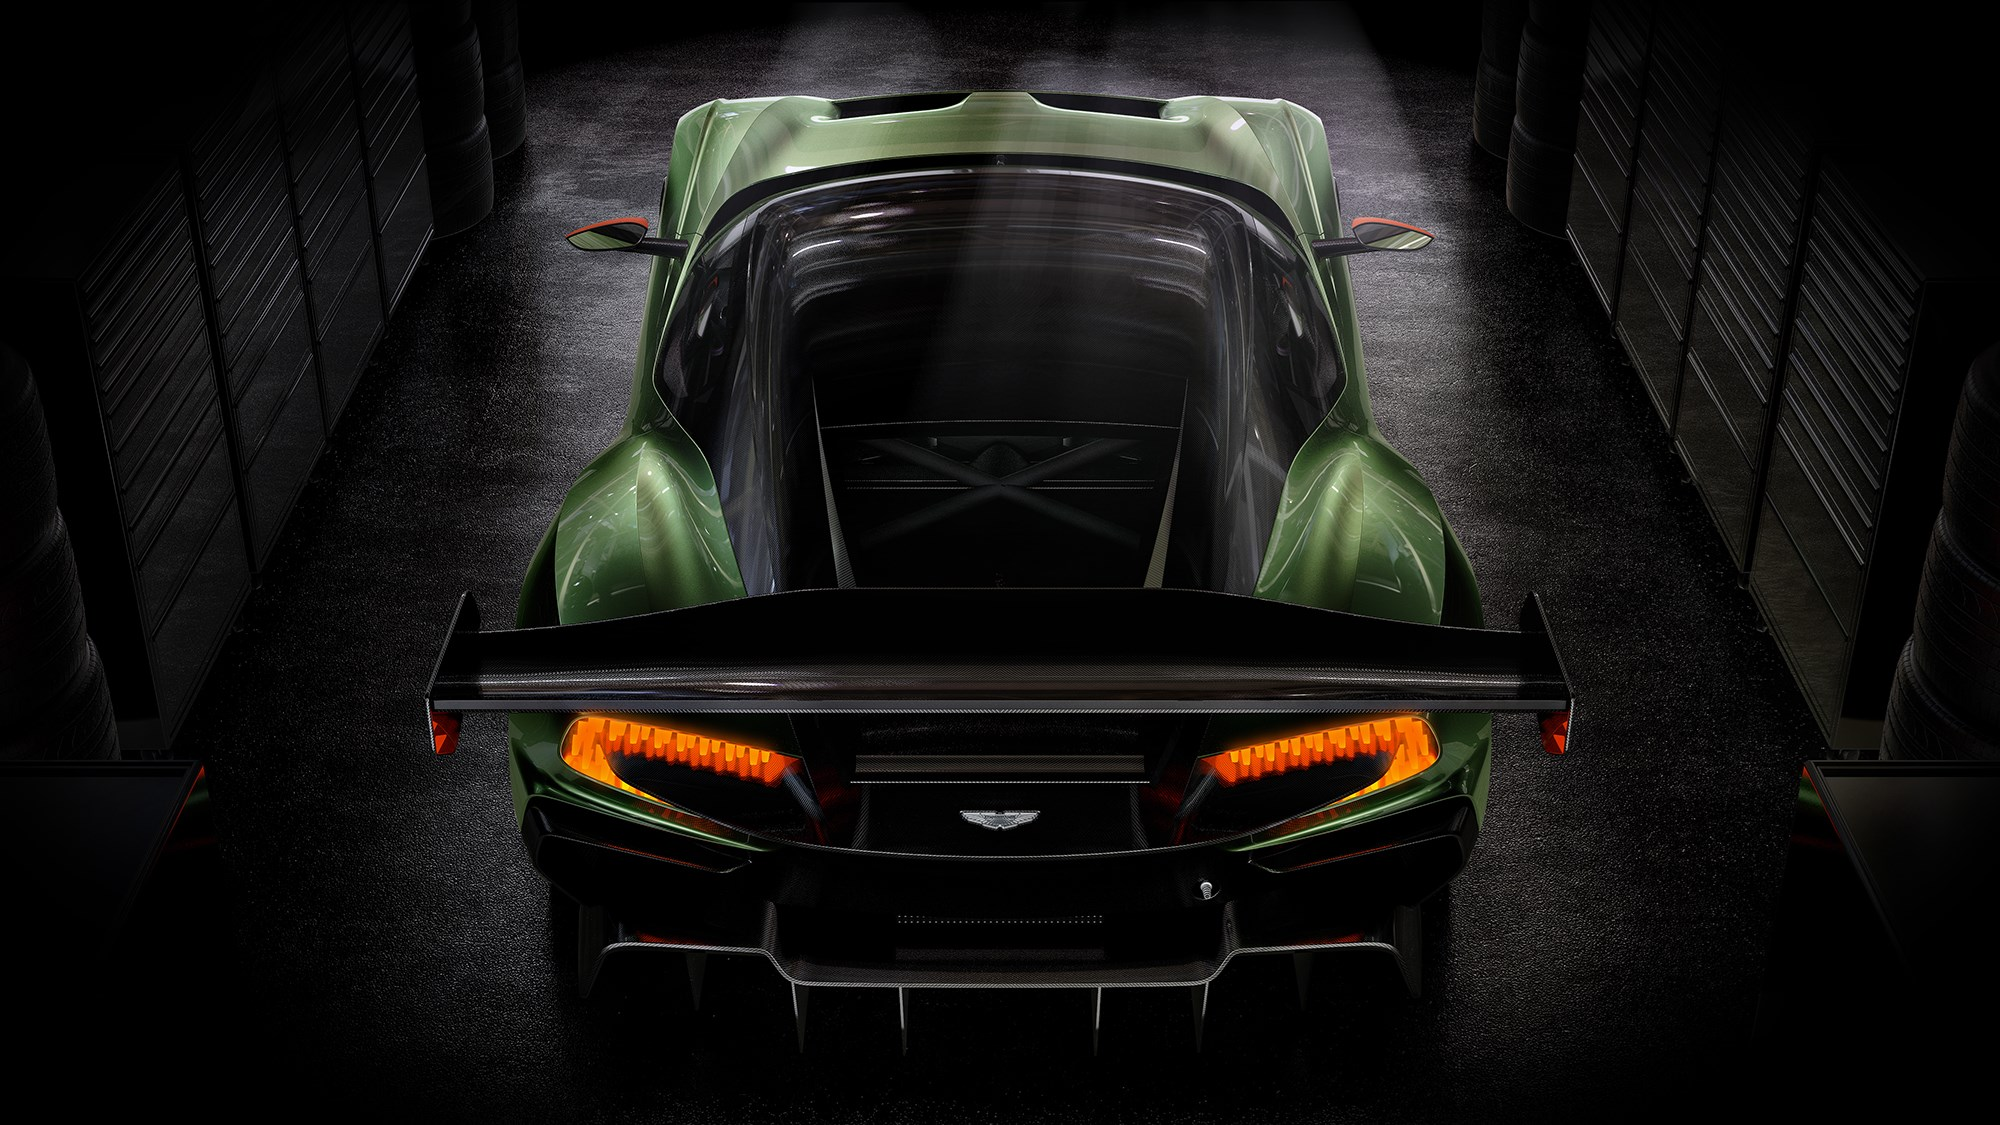 Aston Martin Vulcan Unveiled 24 Extreme Track Day Cars For 1 8m